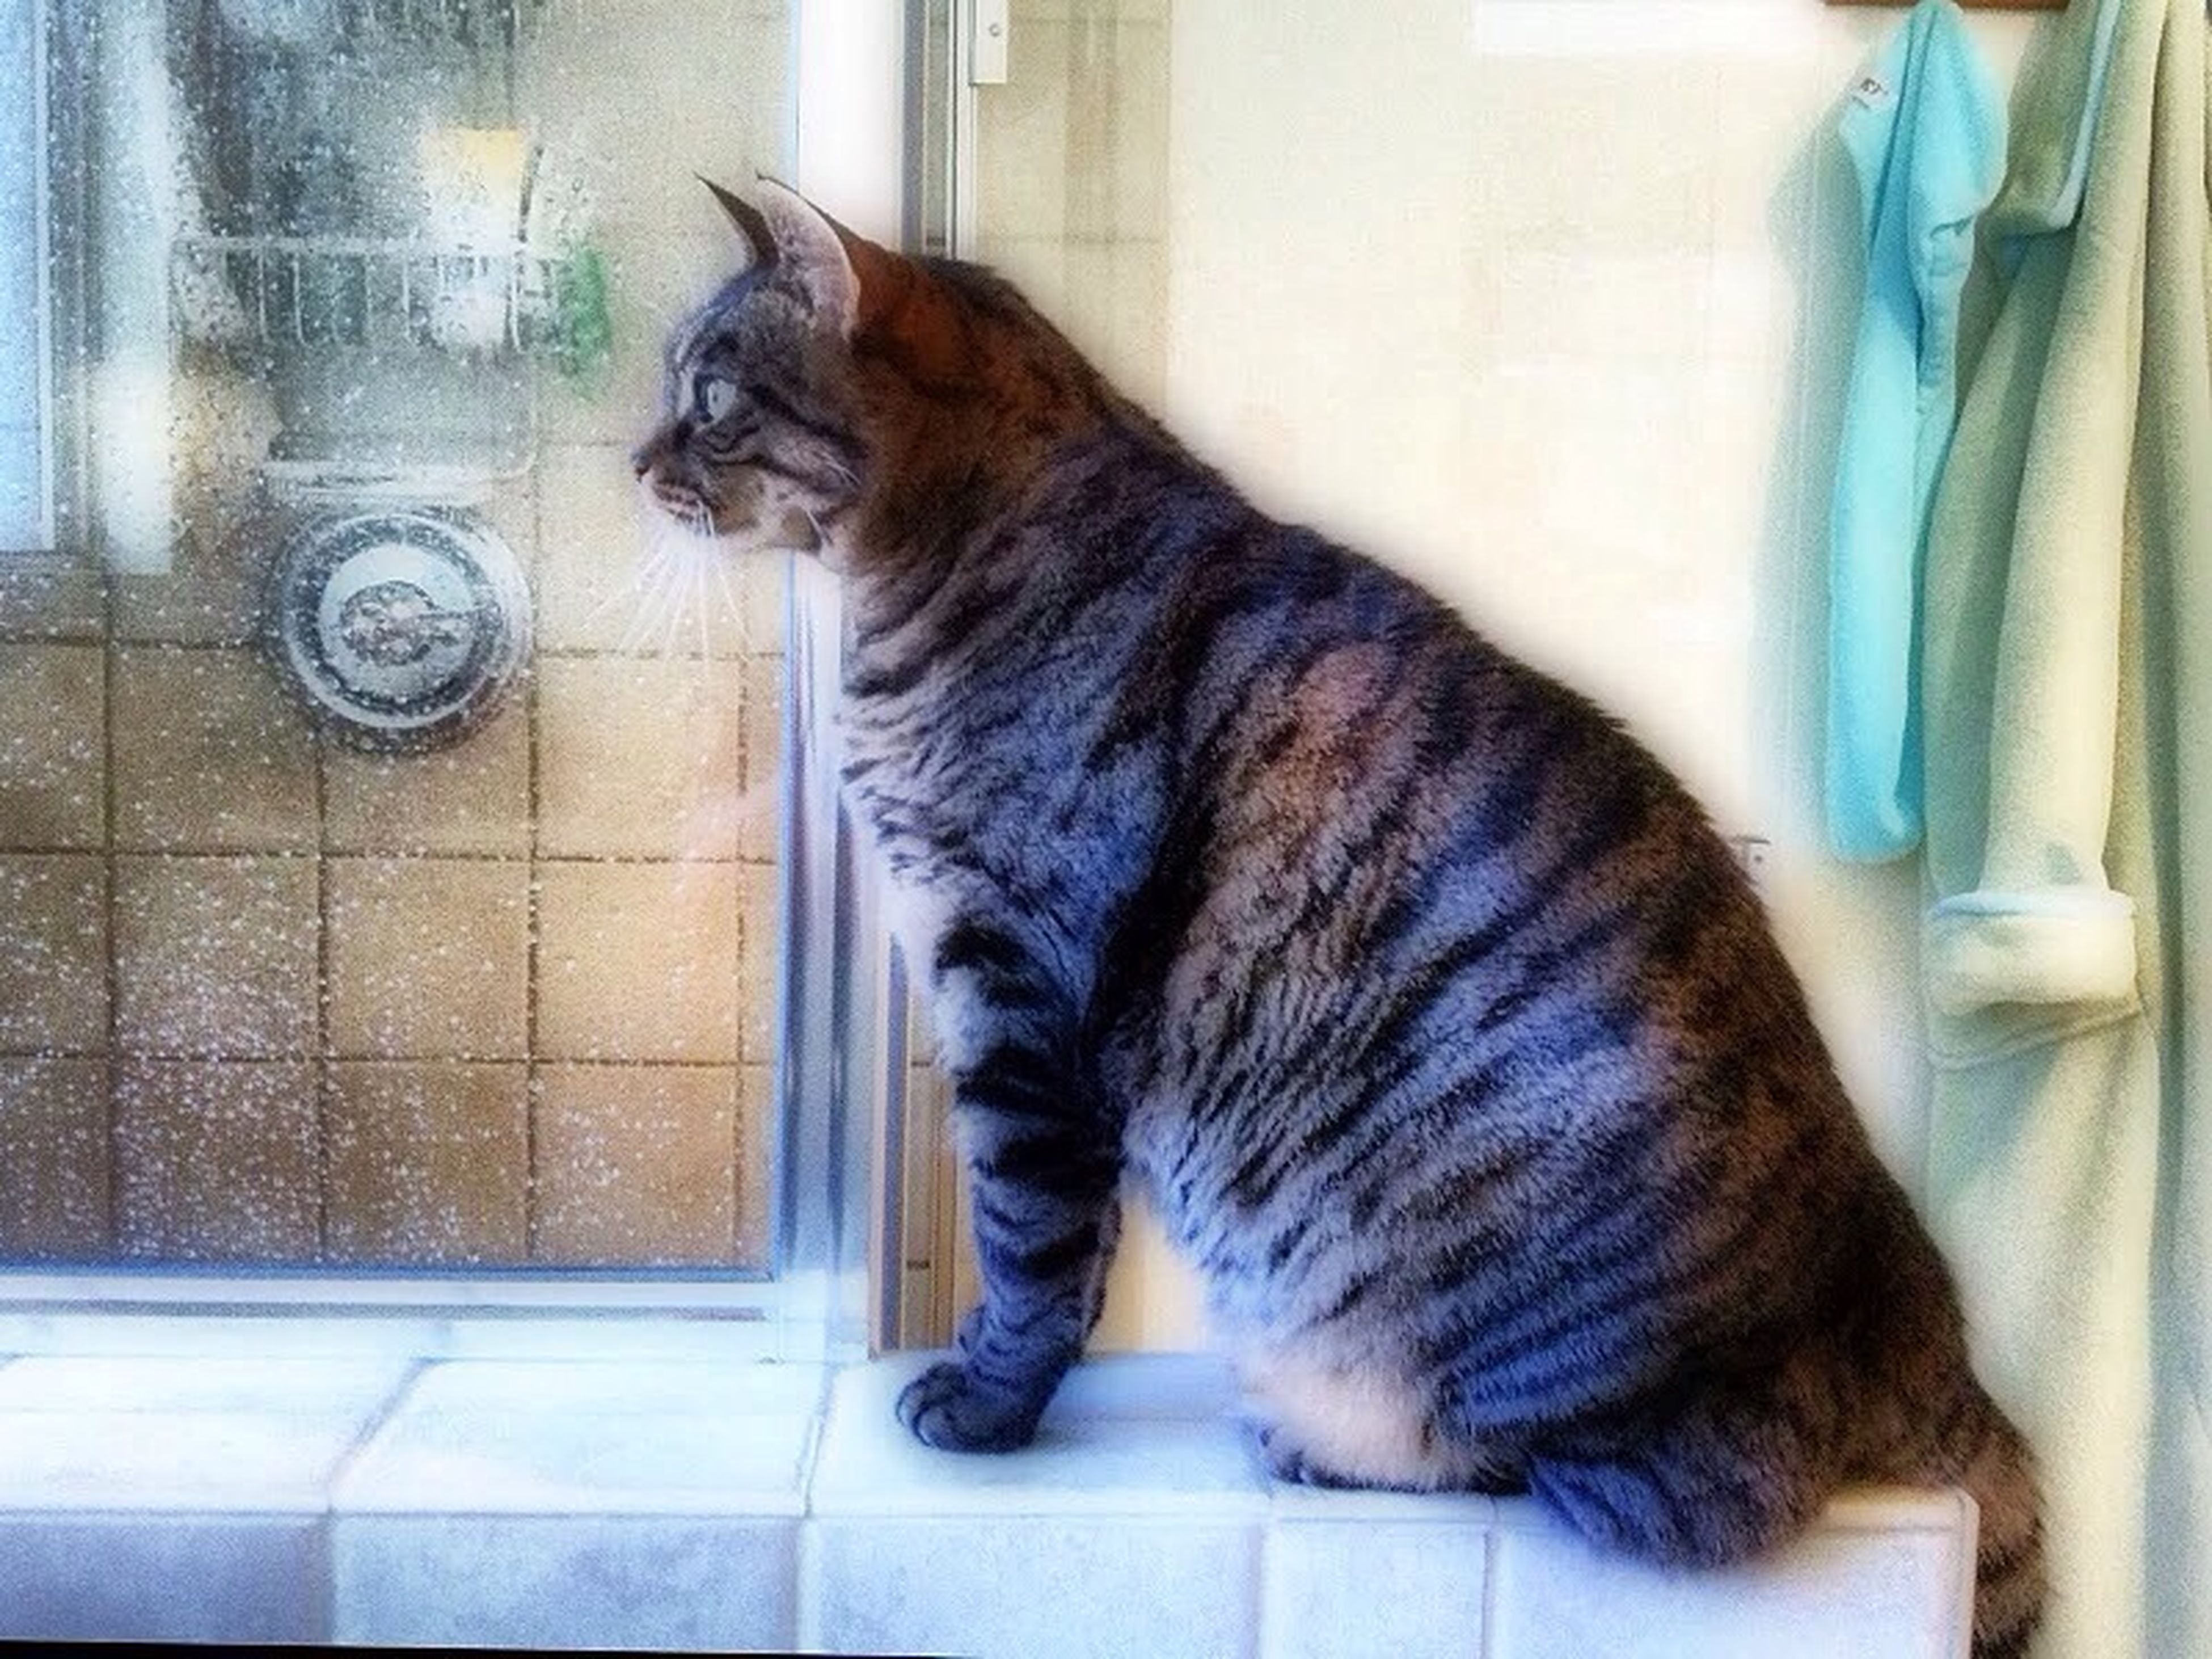 pets, domestic animals, one animal, animal themes, mammal, domestic cat, indoors, cat, feline, relaxation, full length, home interior, door, sleeping, window, home, resting, no people, side view, sitting